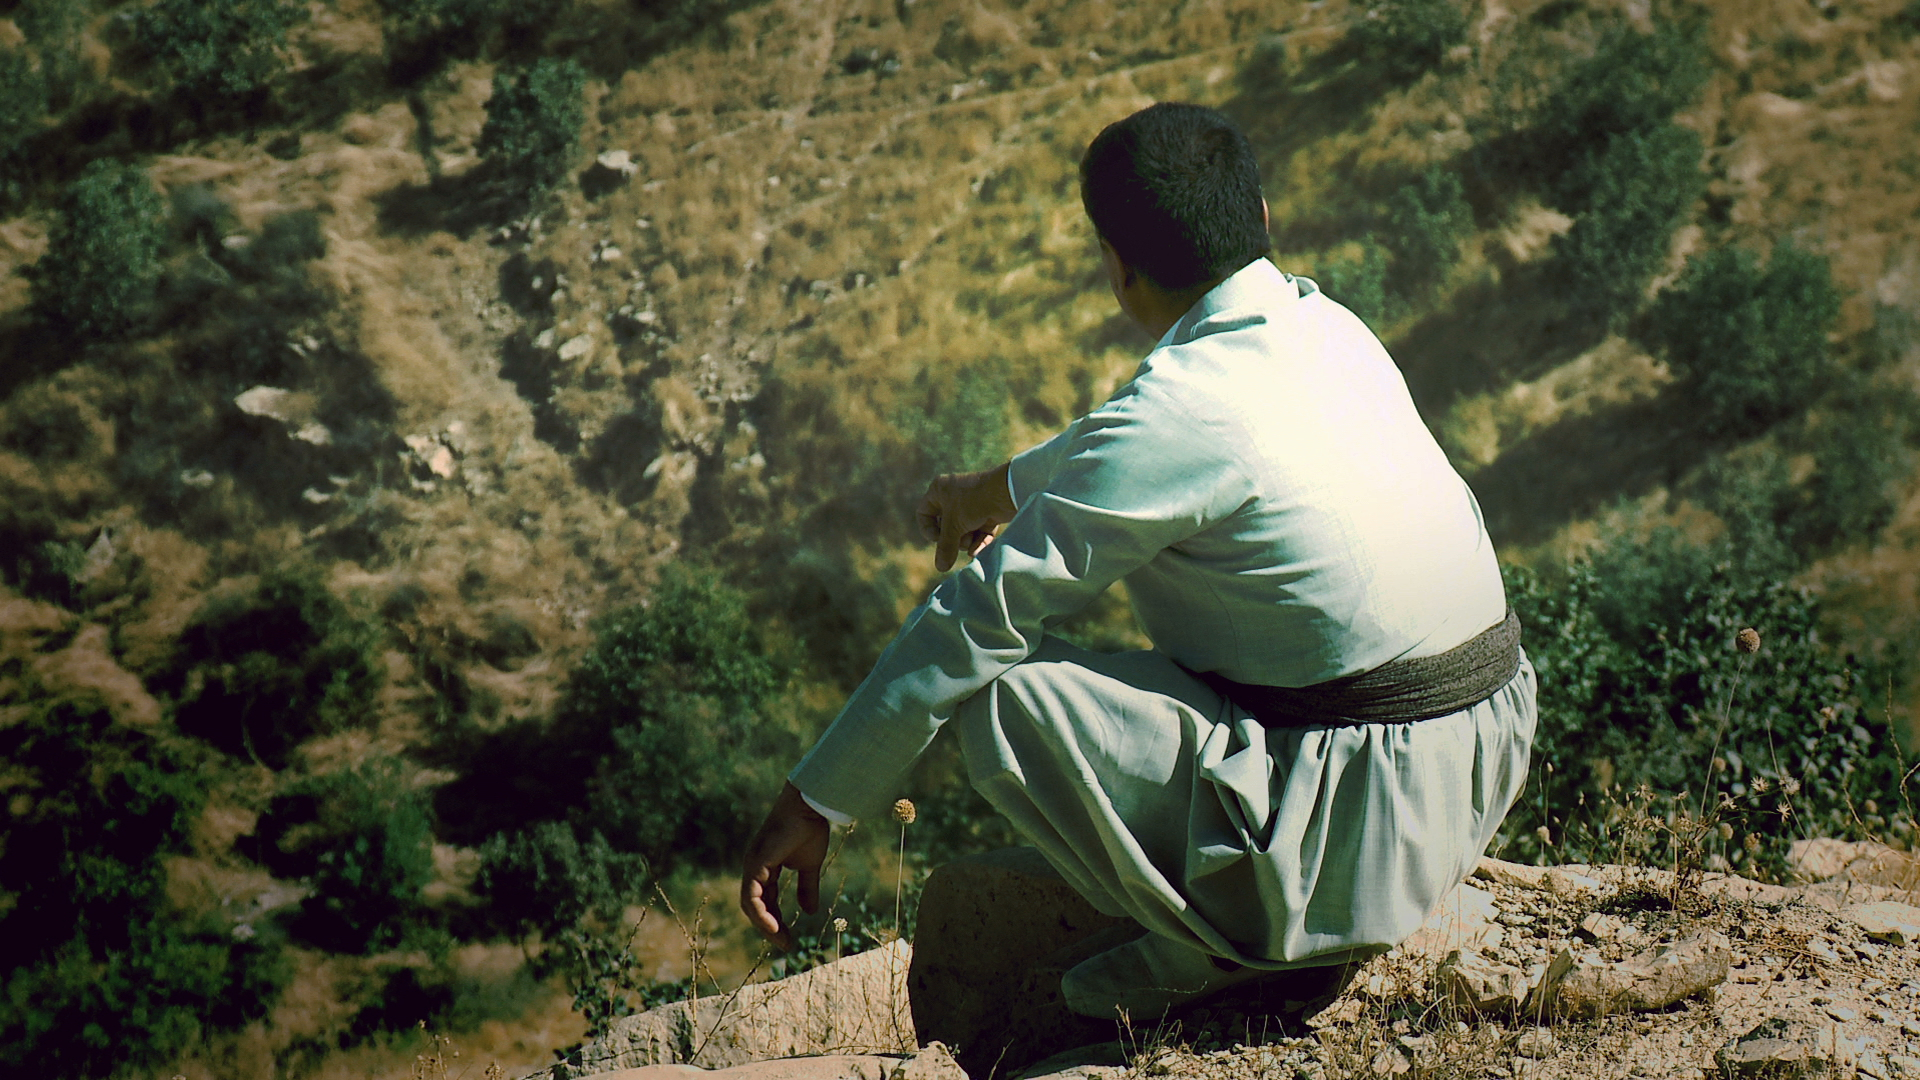 WIRYA ASKARI describes his dramatic nighttime escape from Askar in May 1988. Fleeing the chemical attack, he hid in a cave with his family and other villagers. Their presence was almost betrayed to the Iraqi army by a crying baby but the soldiers, unable to reach to the cave entrance, retreated. Just in time, Wirya stopped his brother from suffocating his own child.